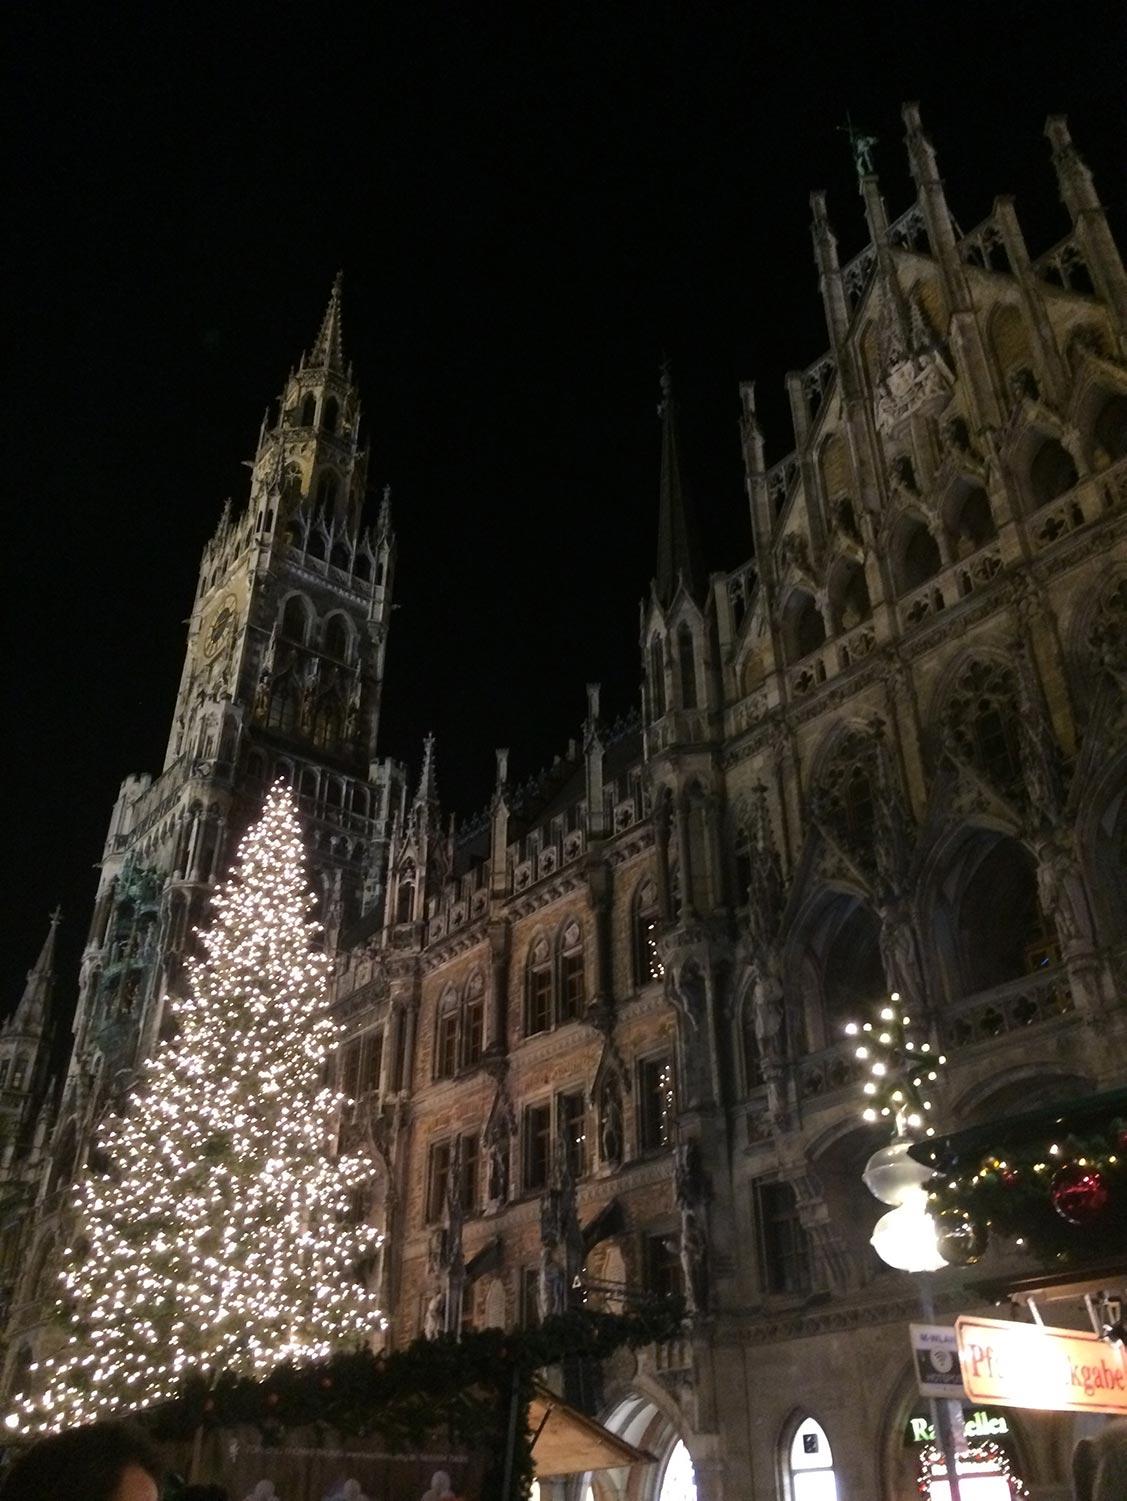 Large Christmas tree with lights in Munich, Germany.